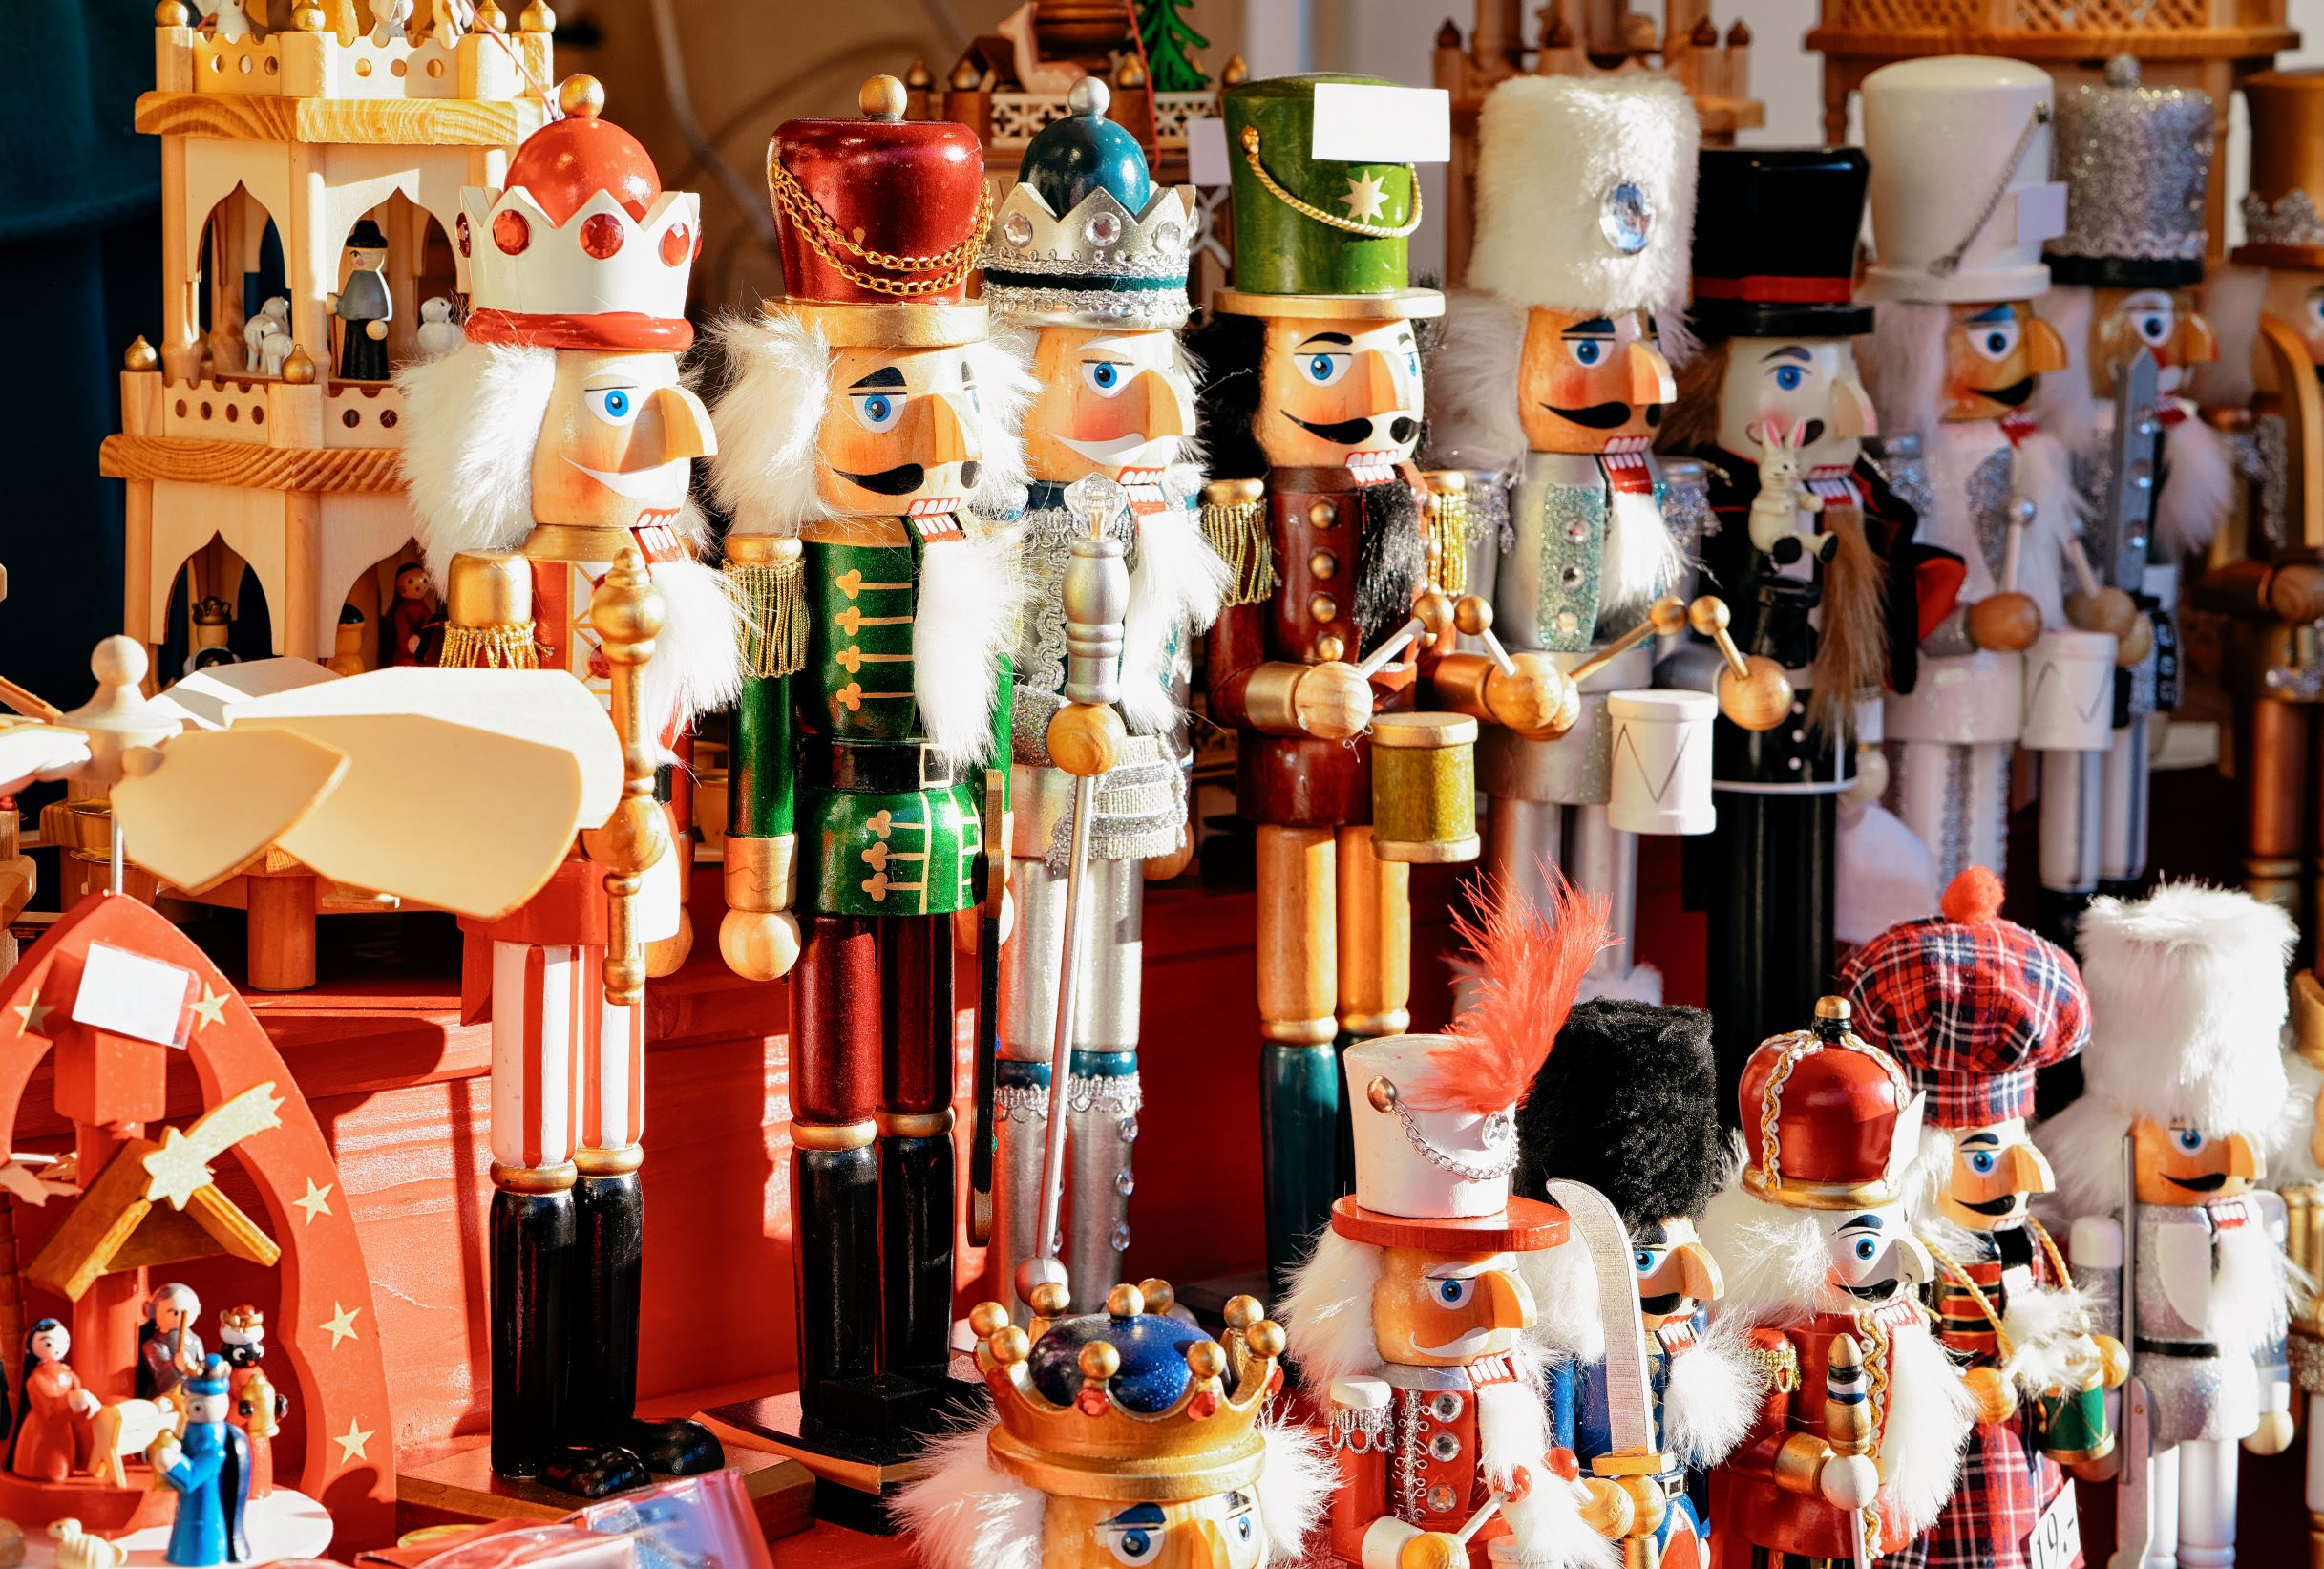 Photo of colorful Christmas nutcrackers being sold at one of the Christmas markets in the USA.